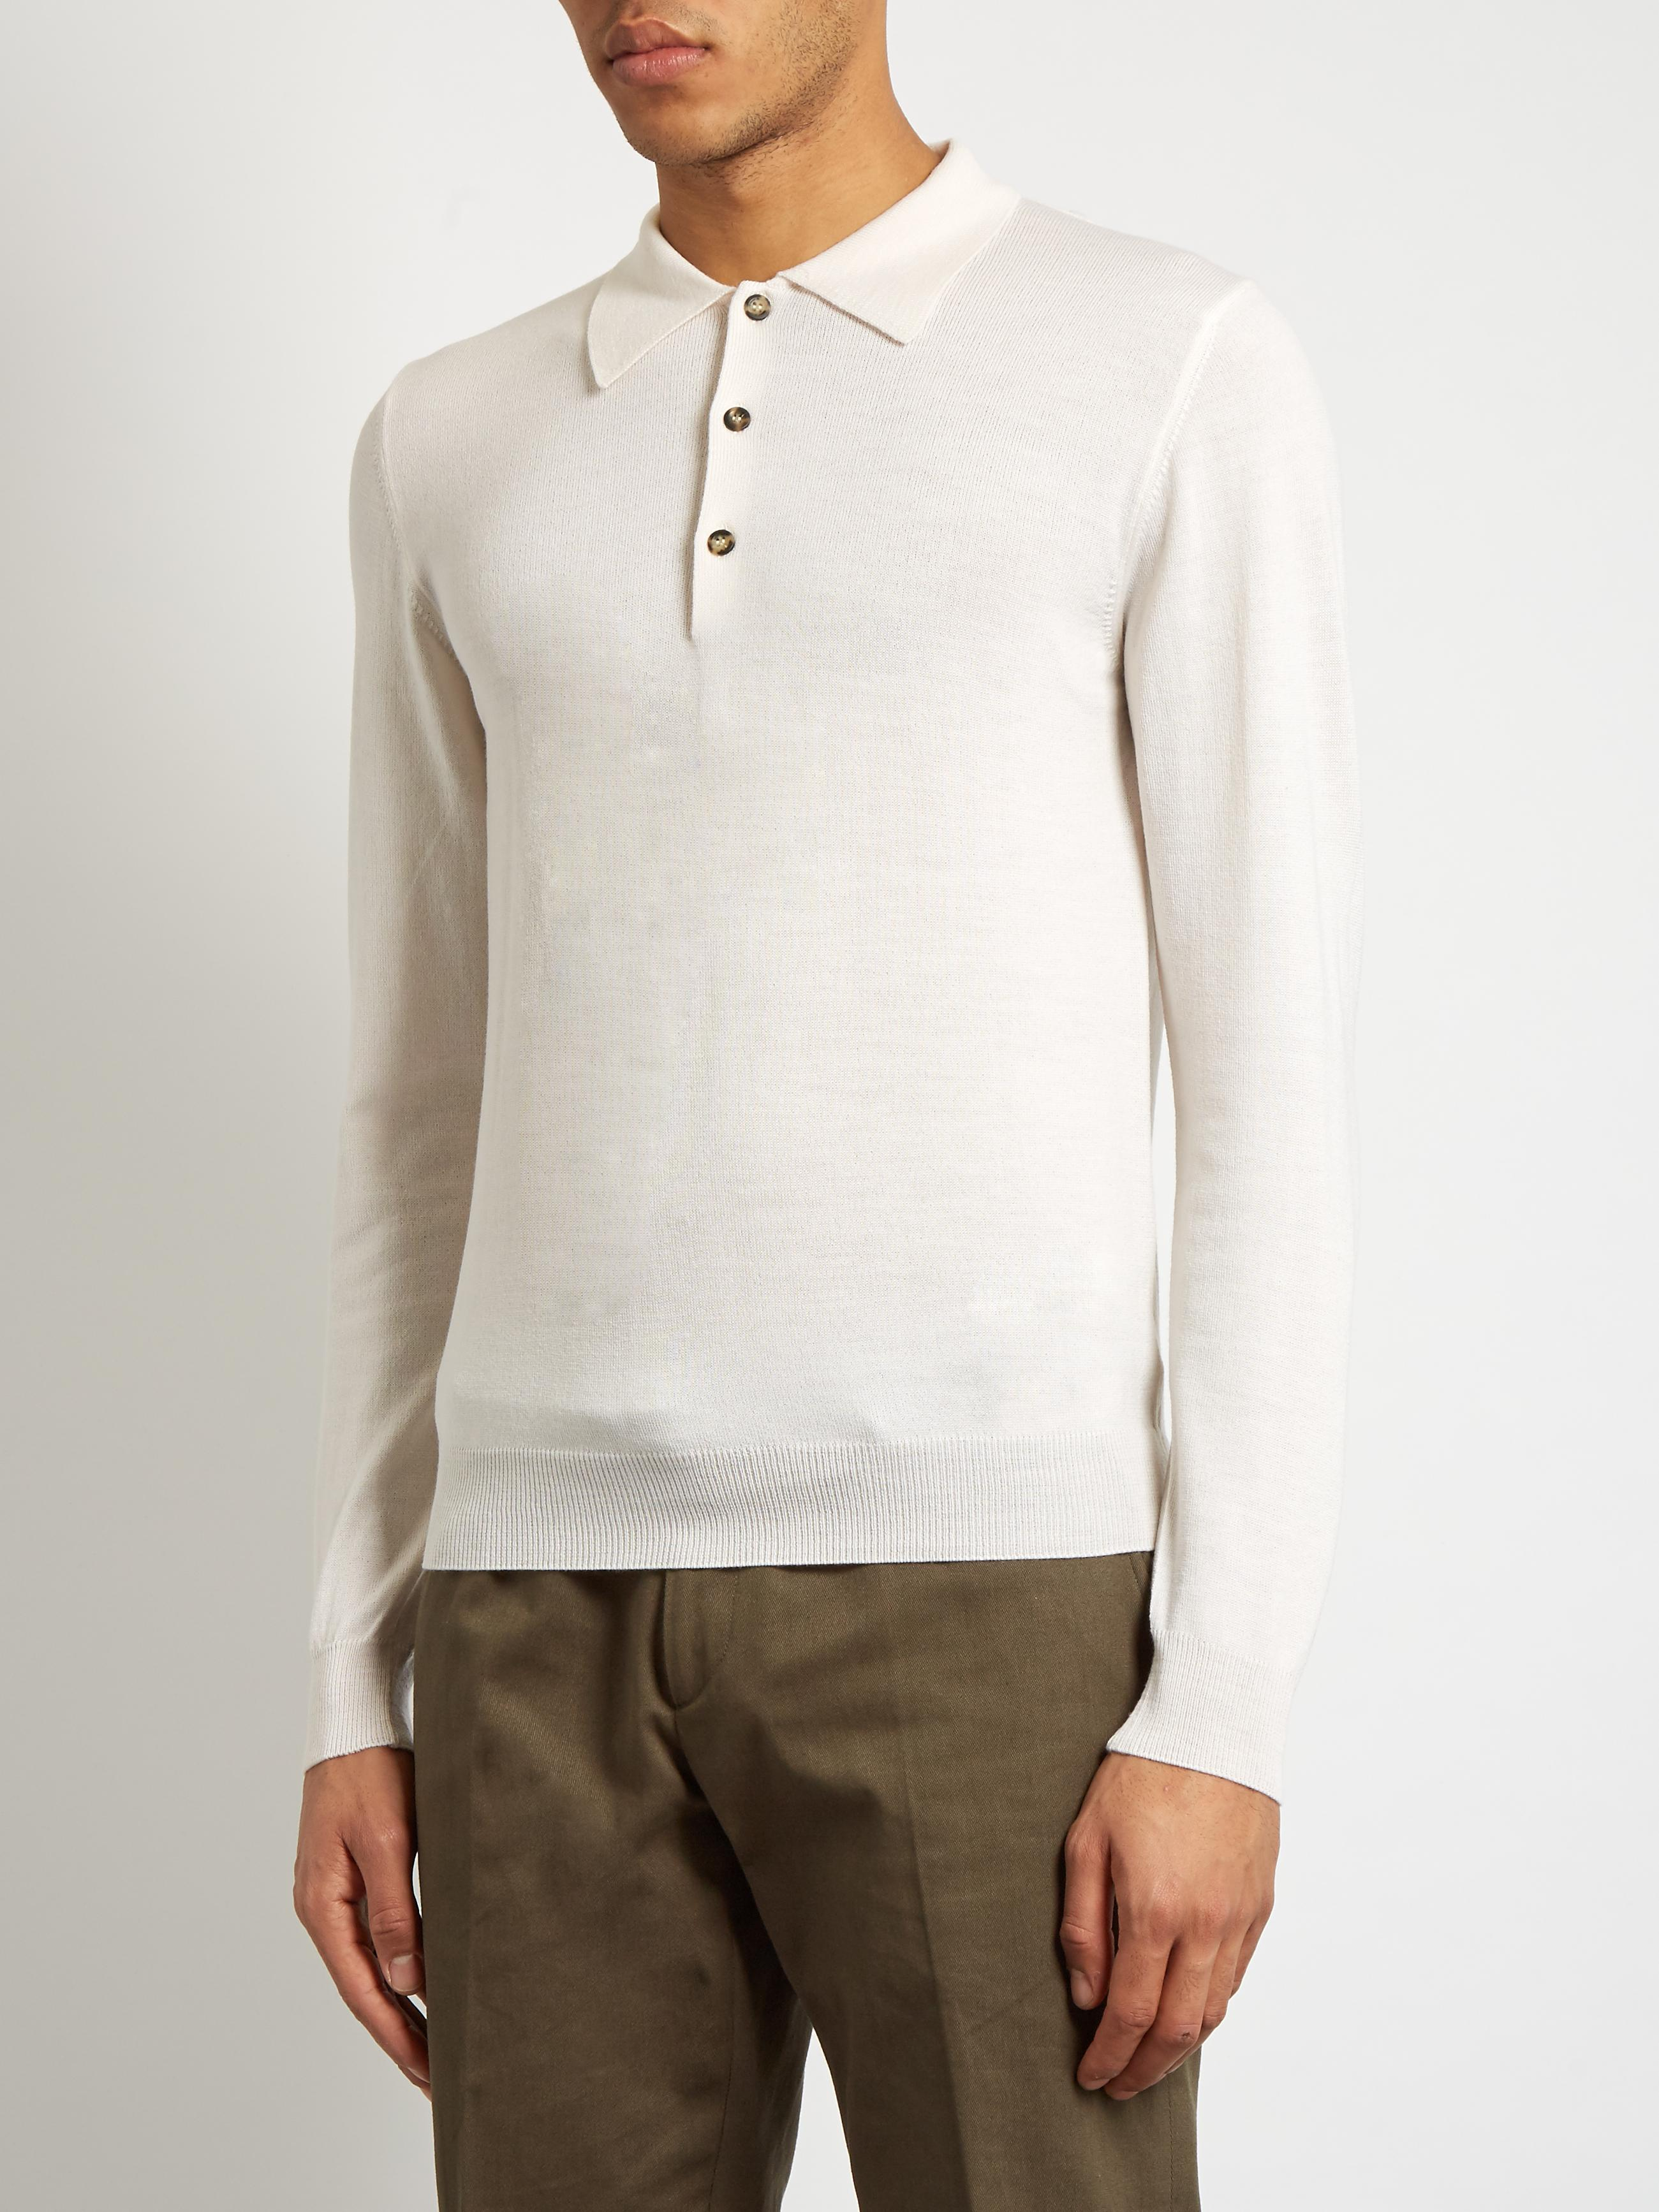 Lyst ditions mr long sleeved wool polo shirt in white for Long sleeve wool polo shirts